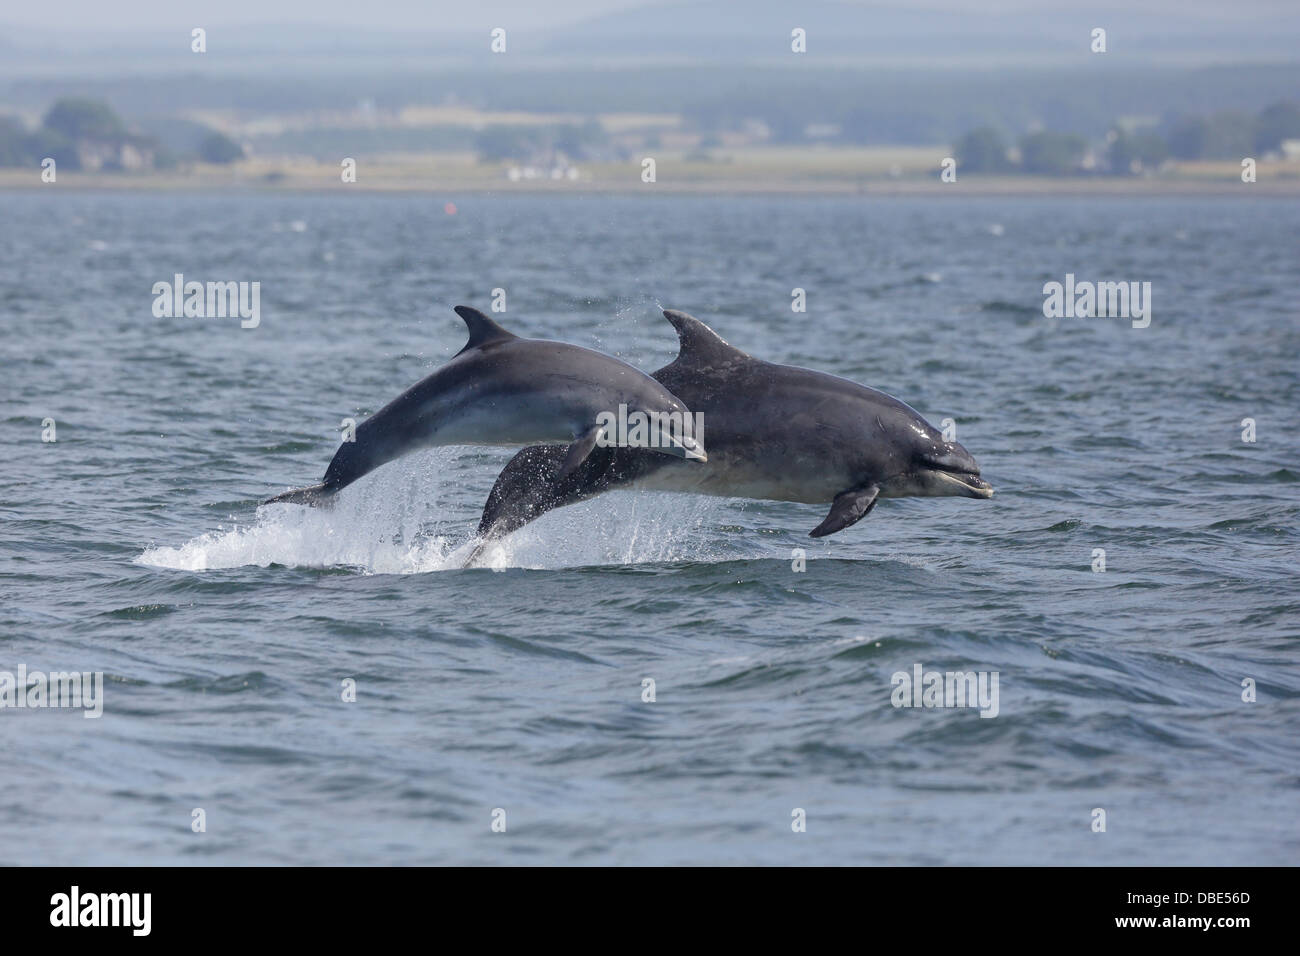 Two Bottle-nosed Dolphins leaping out of the water at Chanonry Point - Stock Image